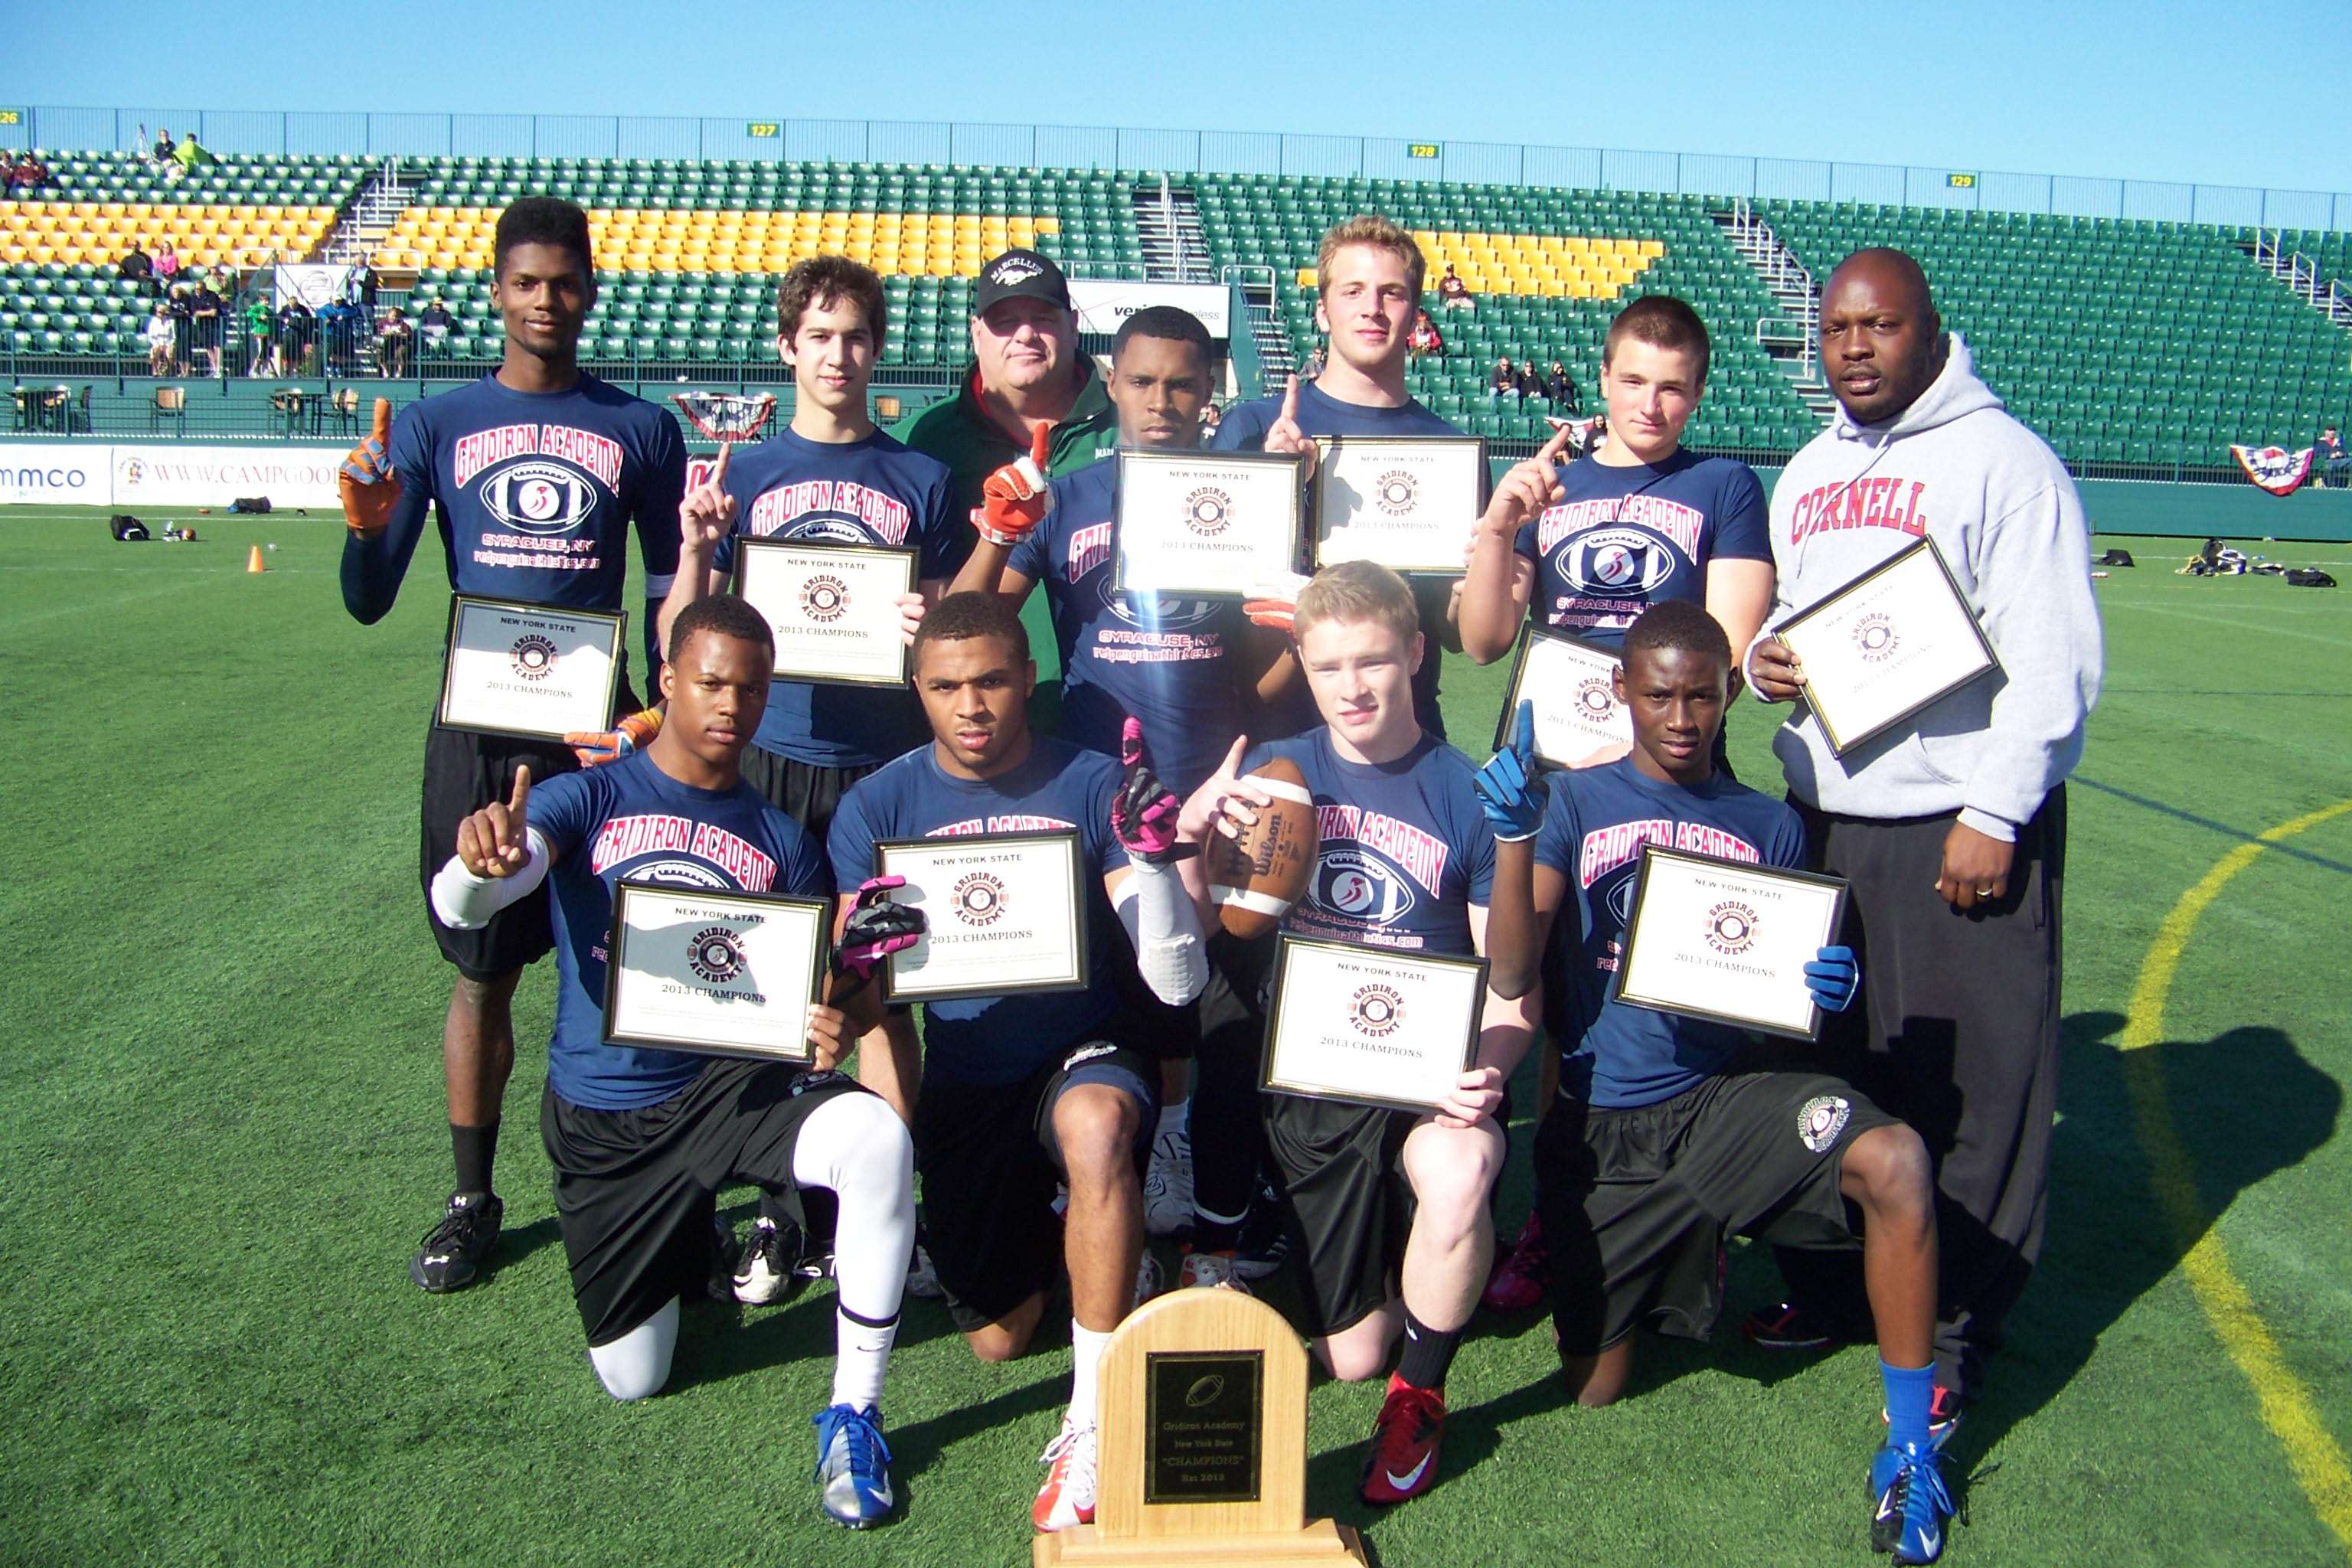 2013 NYS Champions Crowned